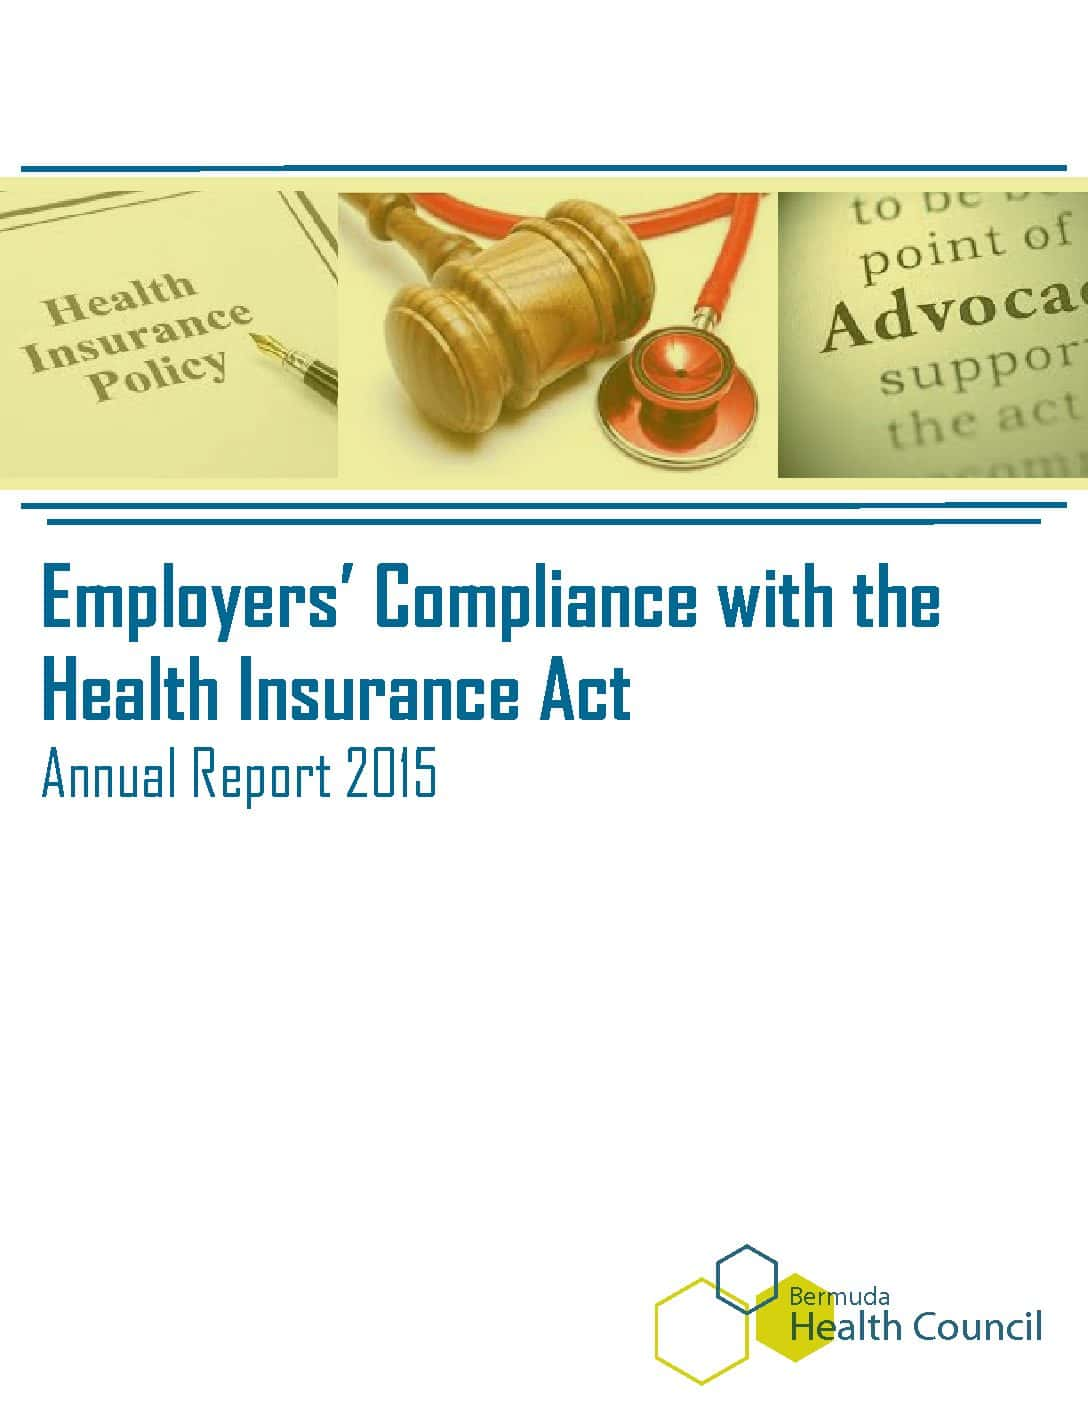 2015 Employers' Compliance Report